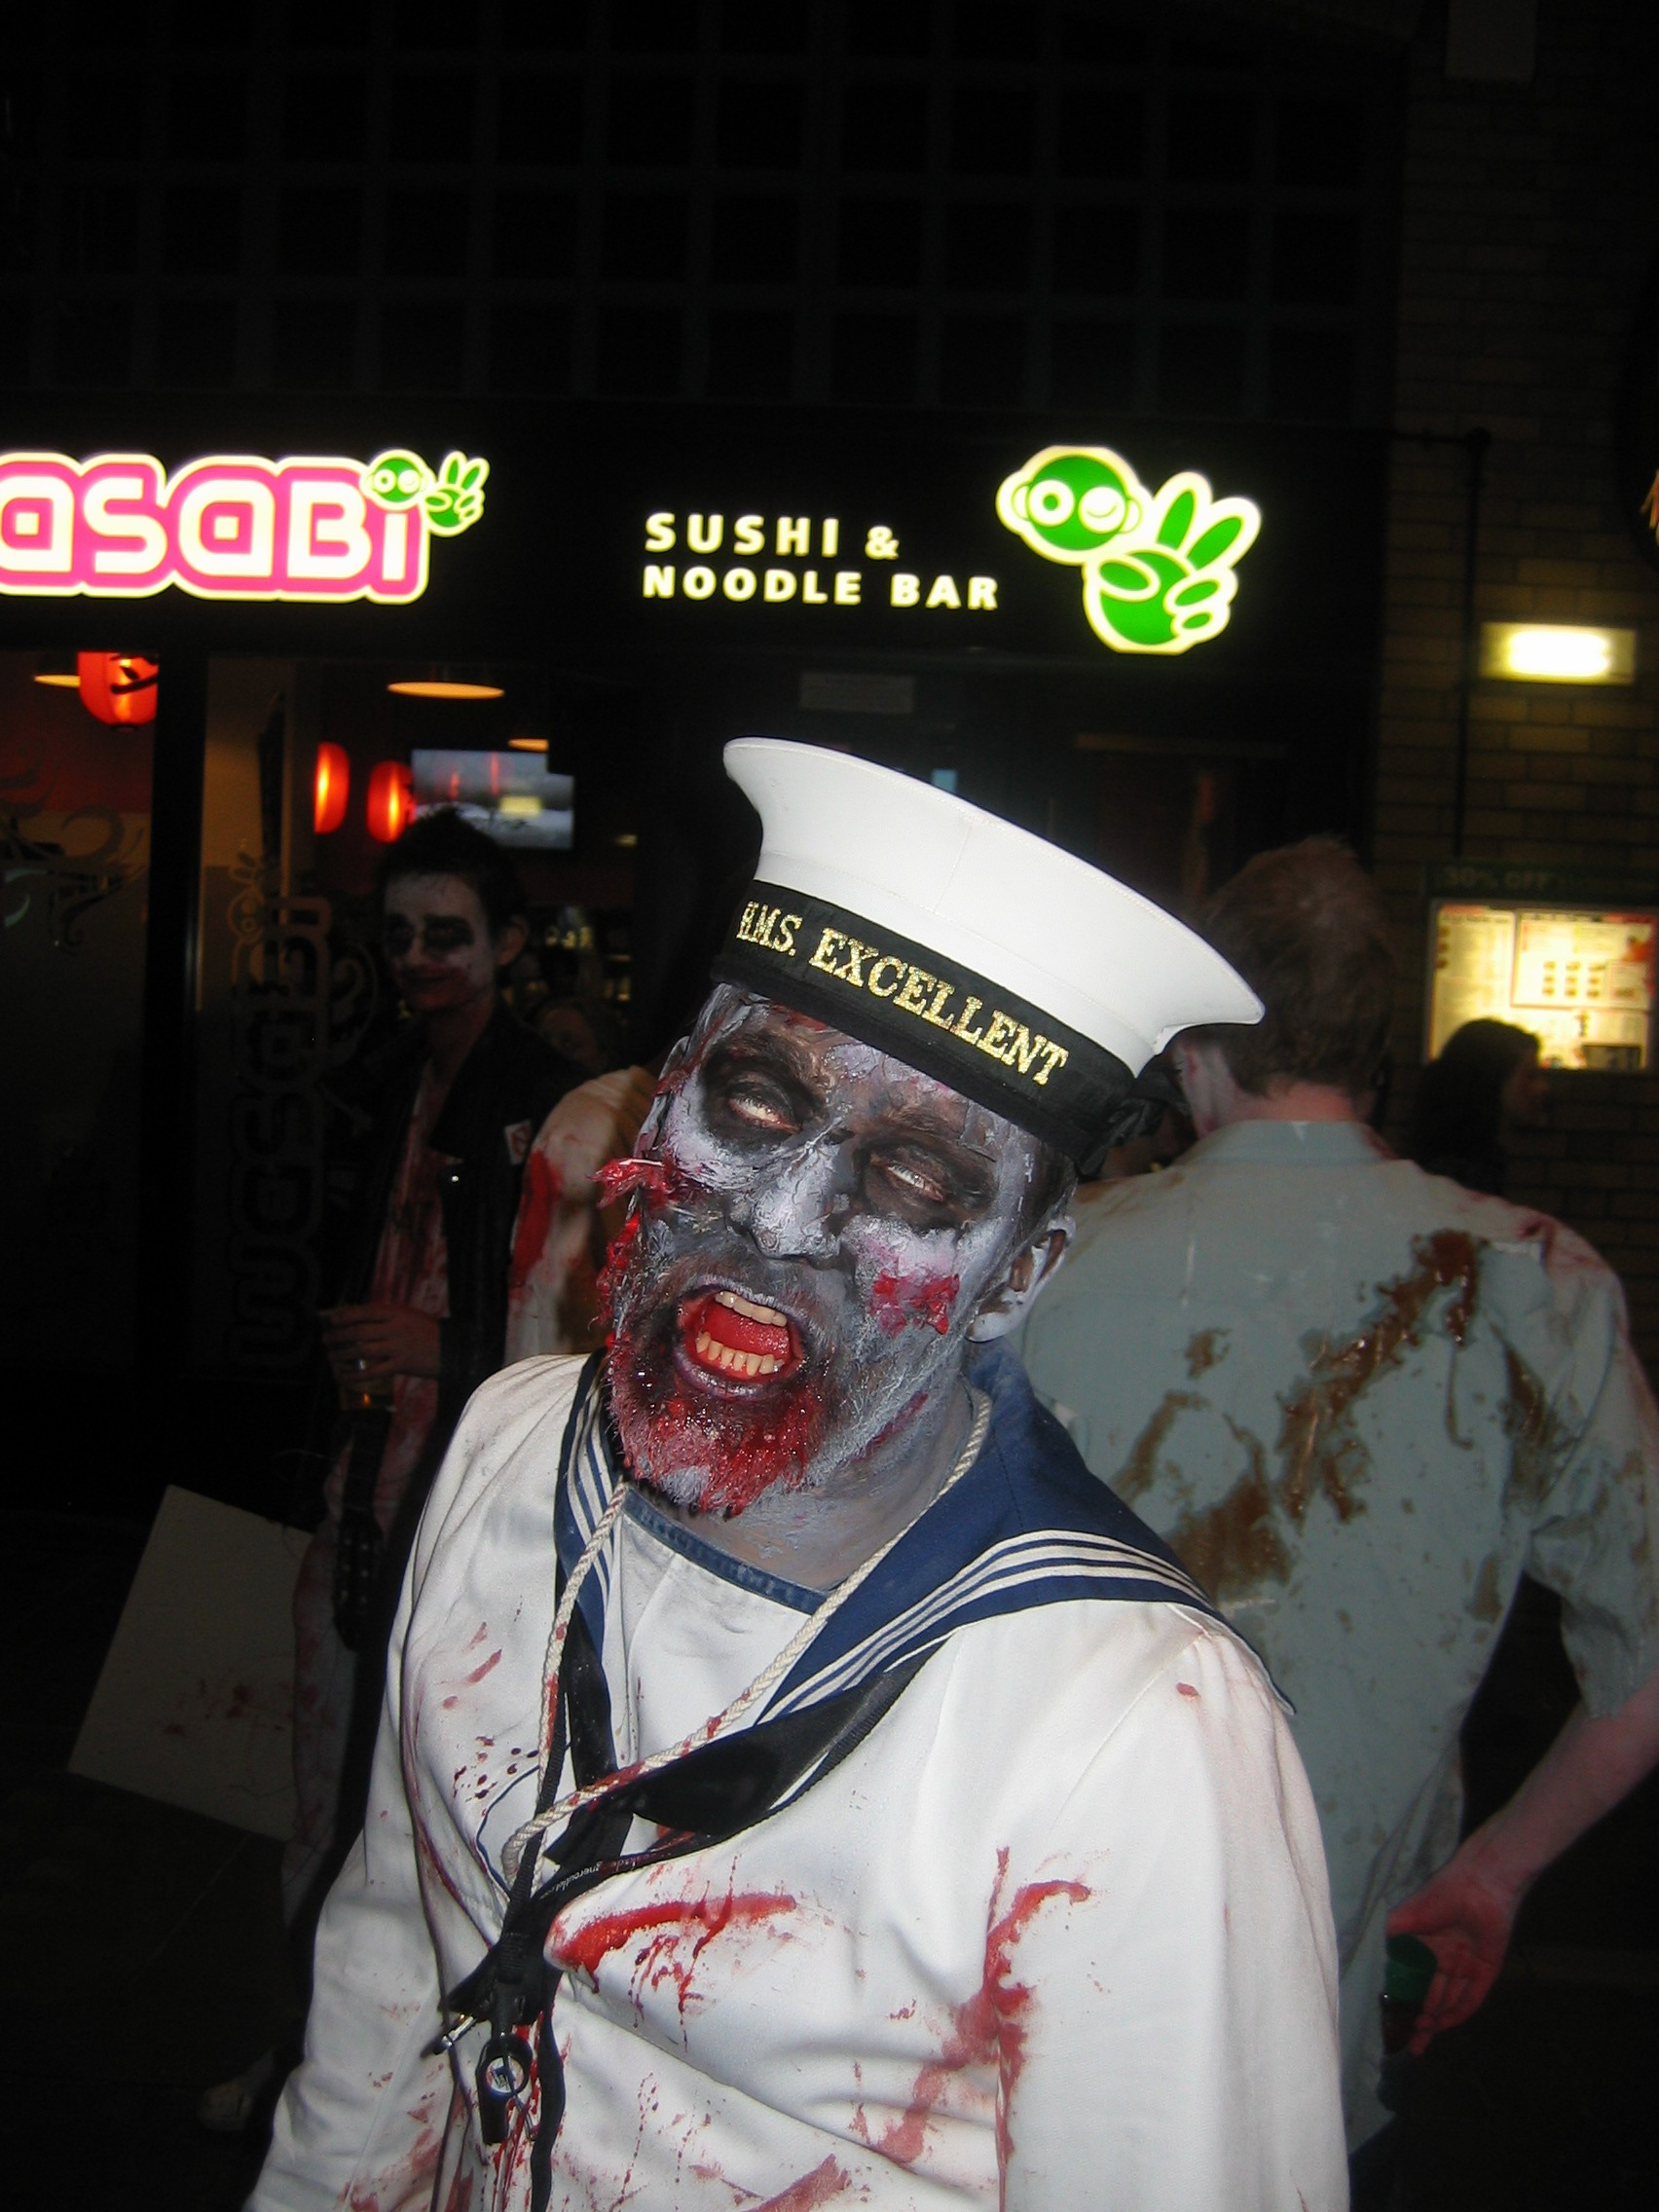 Photo taken by me – zombie sailor